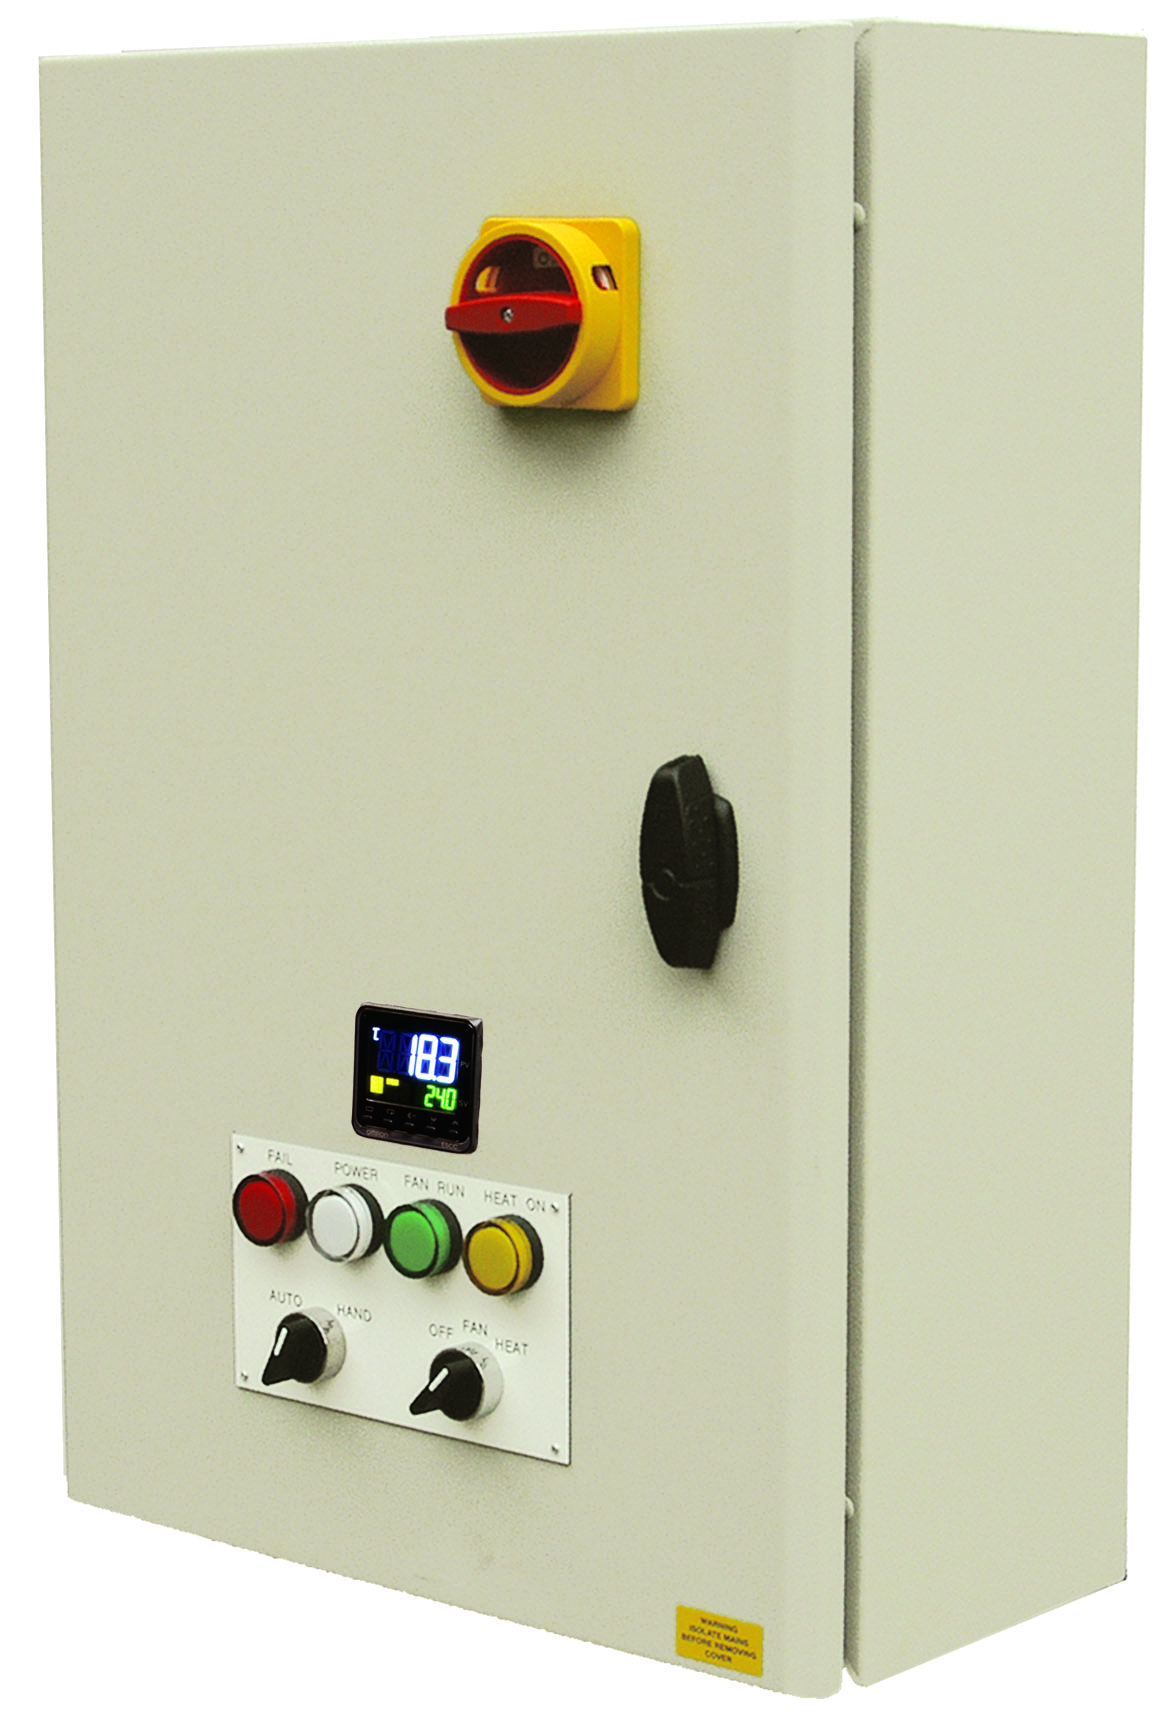 Low pressure hot water controllers